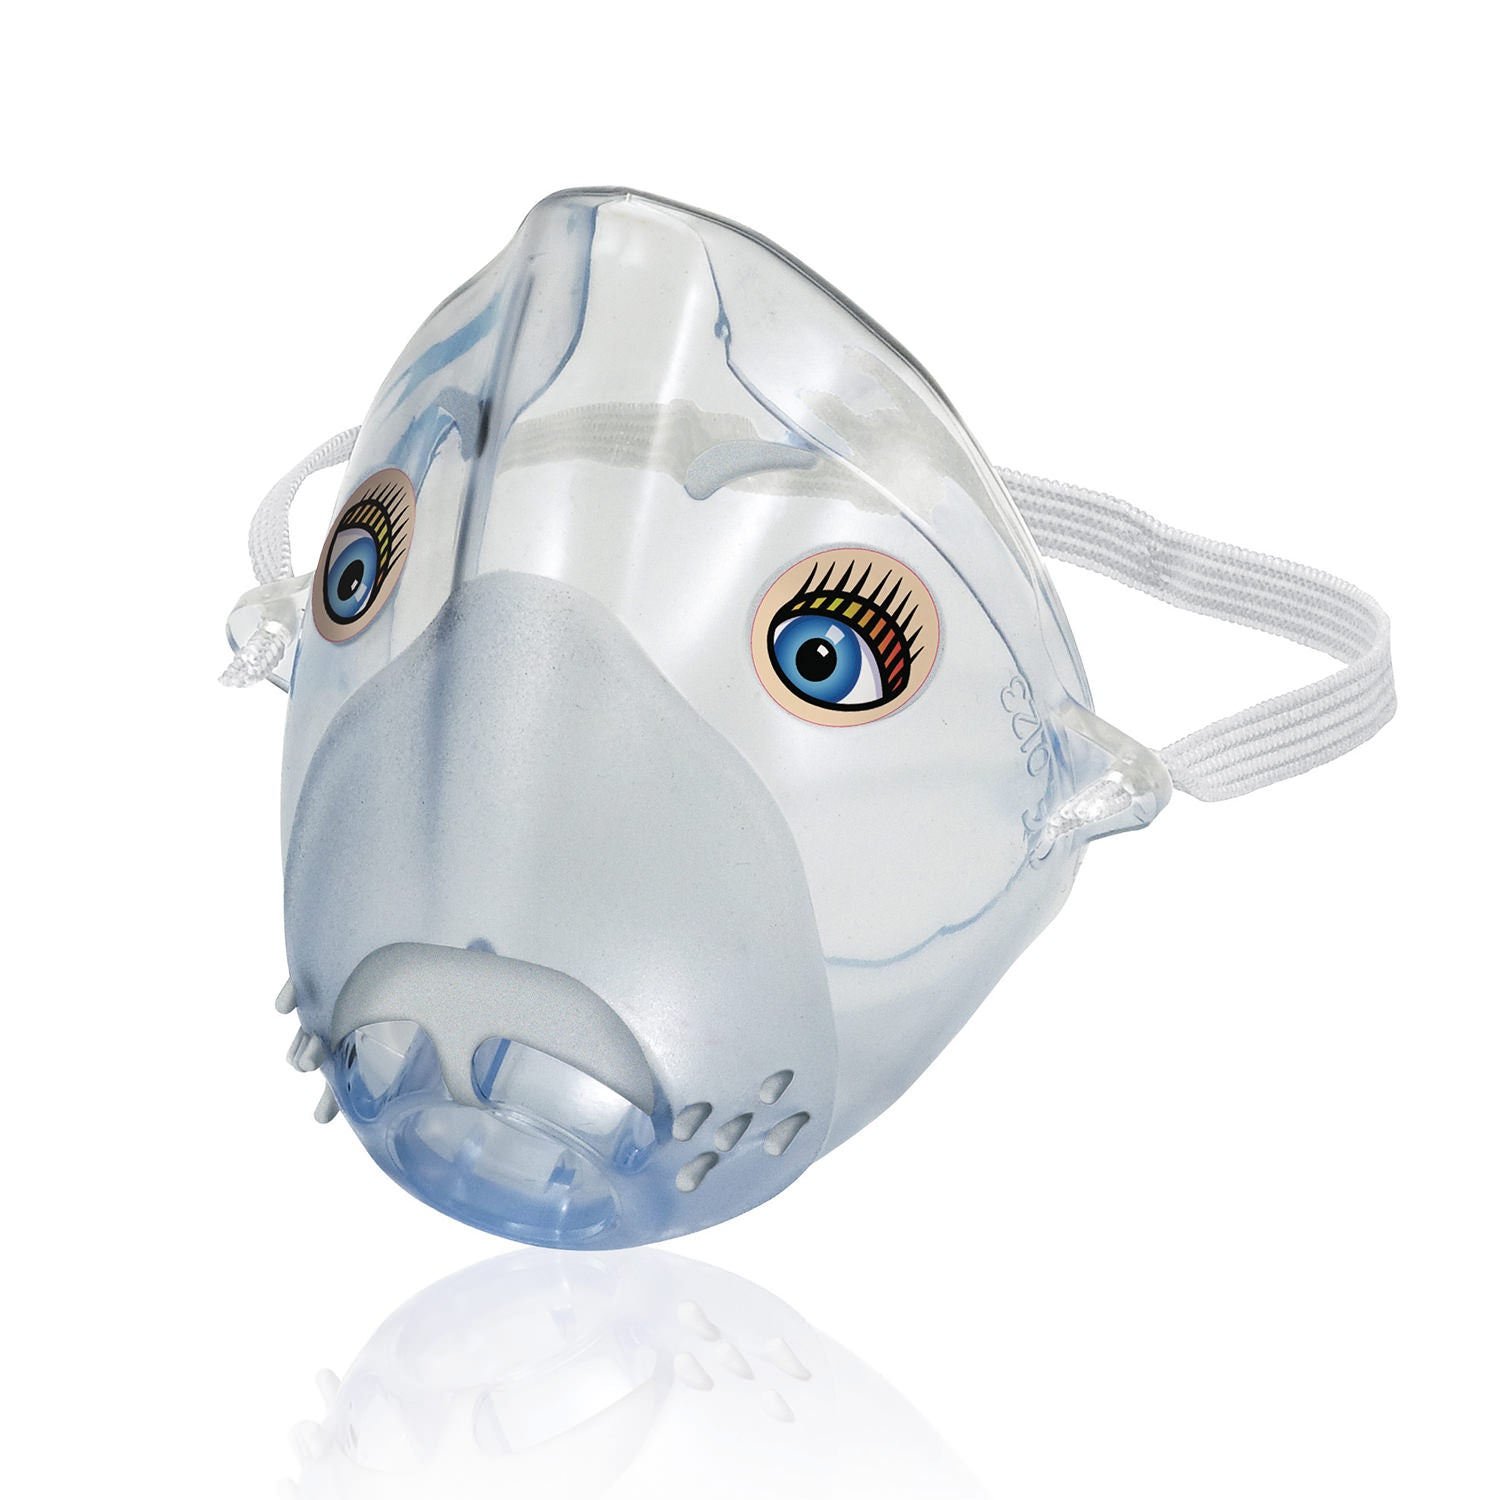 Sami the Seal Pediatric Nebulizer Mask